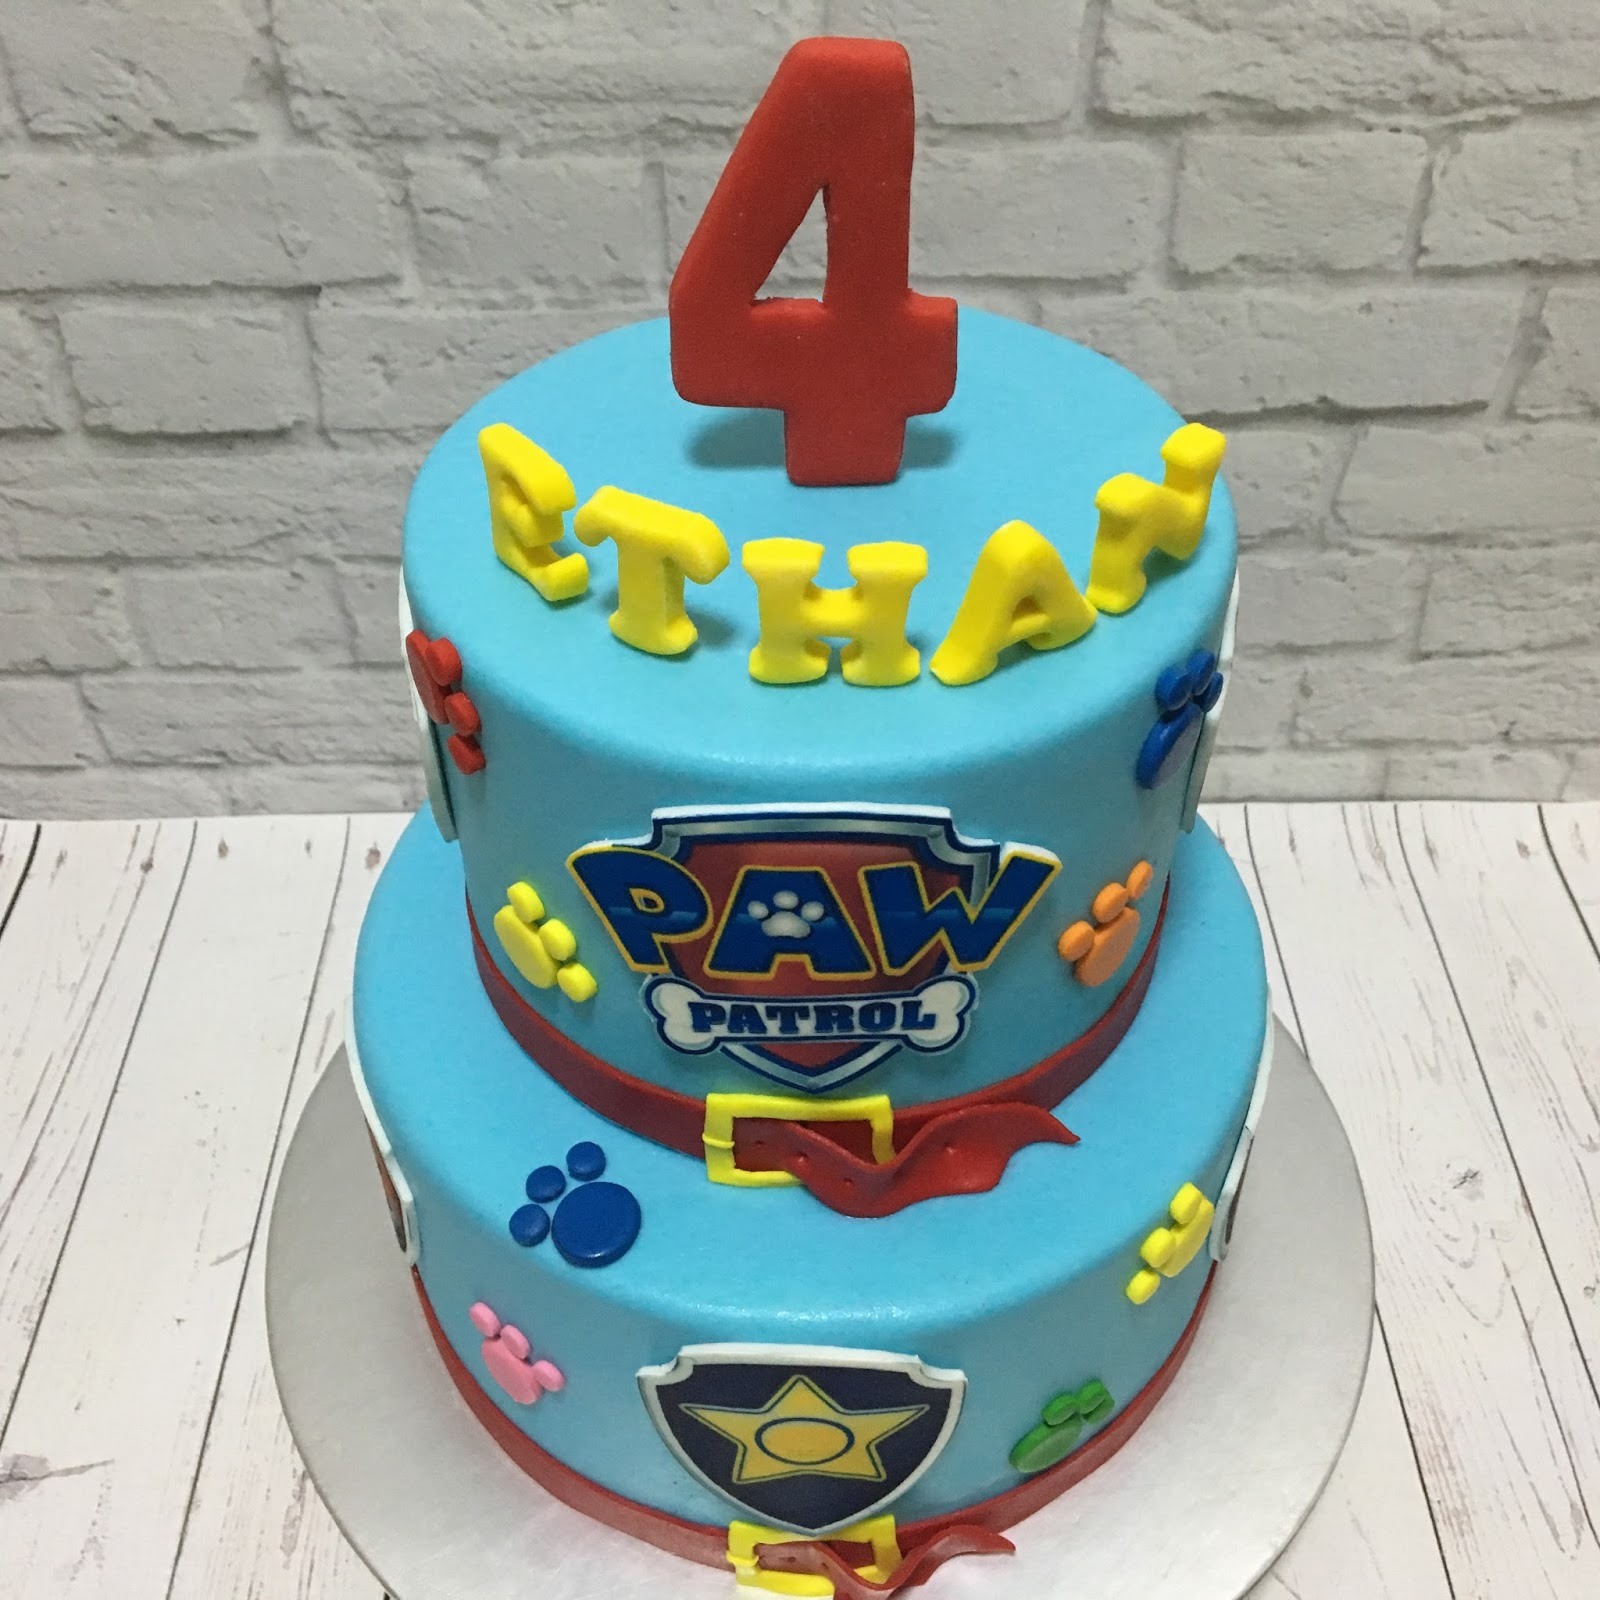 The Top Of Cake Is Decorated With Standing Letters Birthday Boys Name And Also A Big No 4